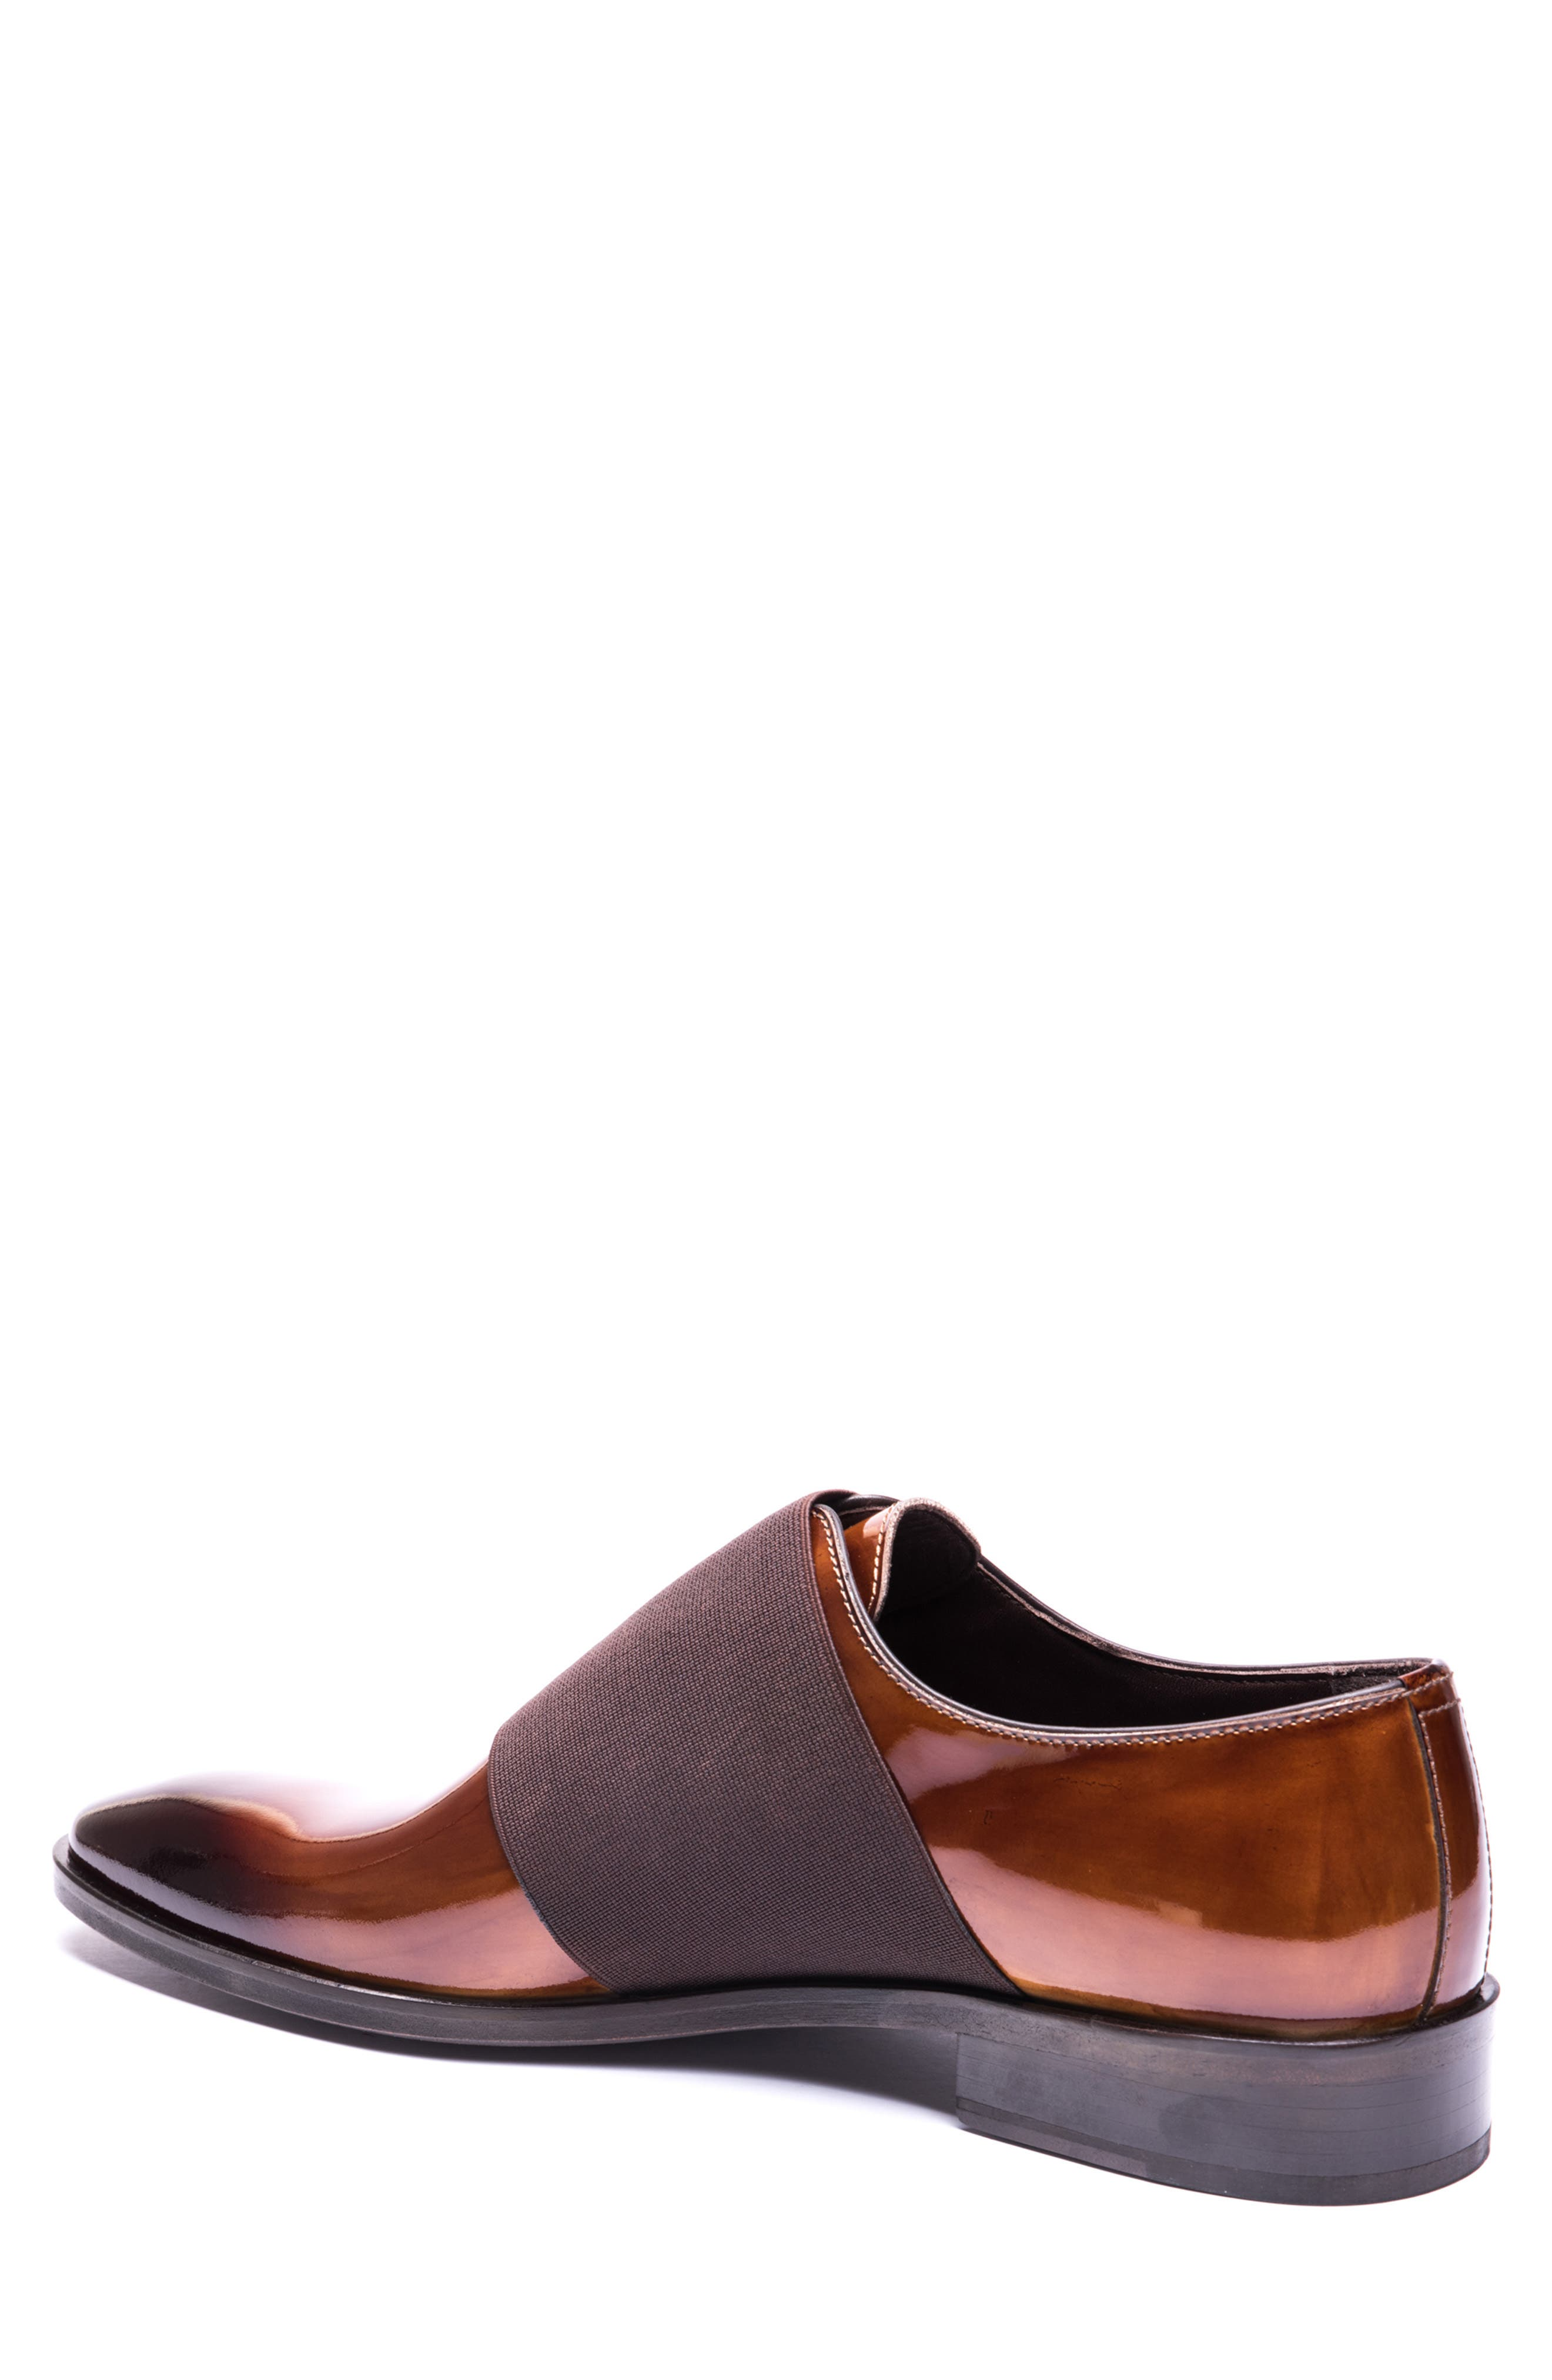 JARED LANG, Vincenzo Whole Cut Slip-On, Alternate thumbnail 2, color, BROWN LEATHER